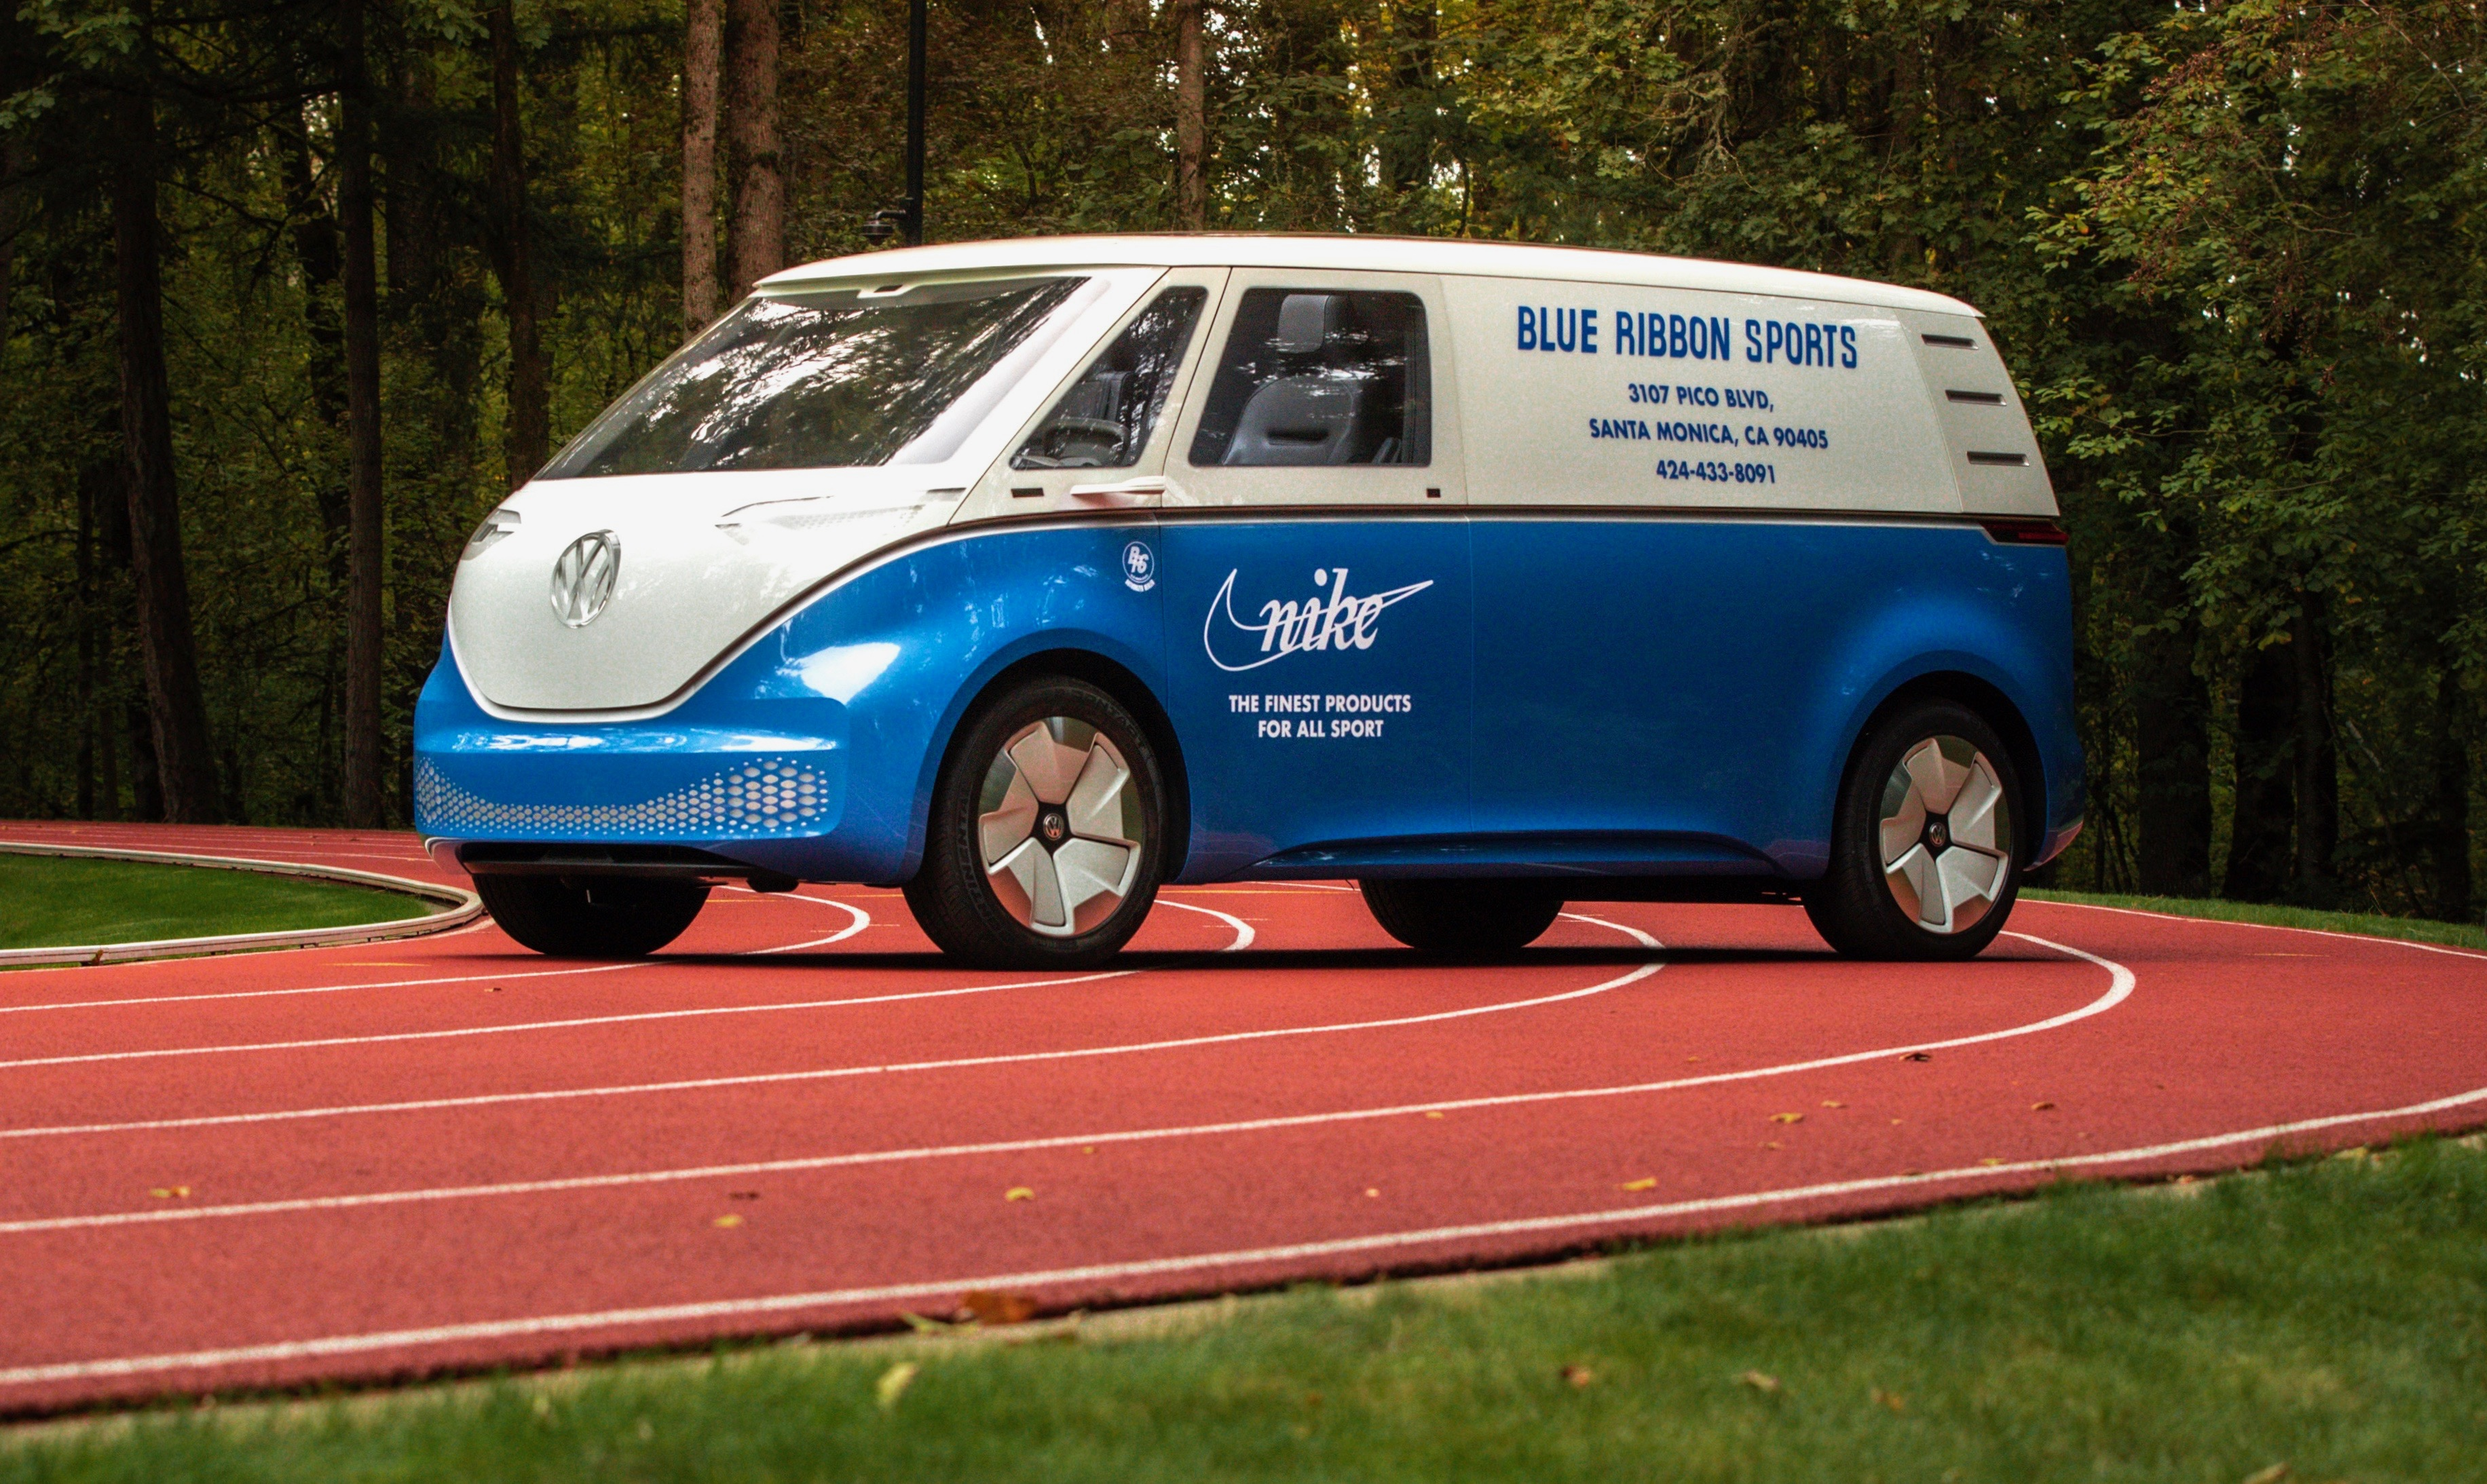 Nike, VW, Nike revive history with a new Blue Ribbon Sports van, ClassicCars.com Journal